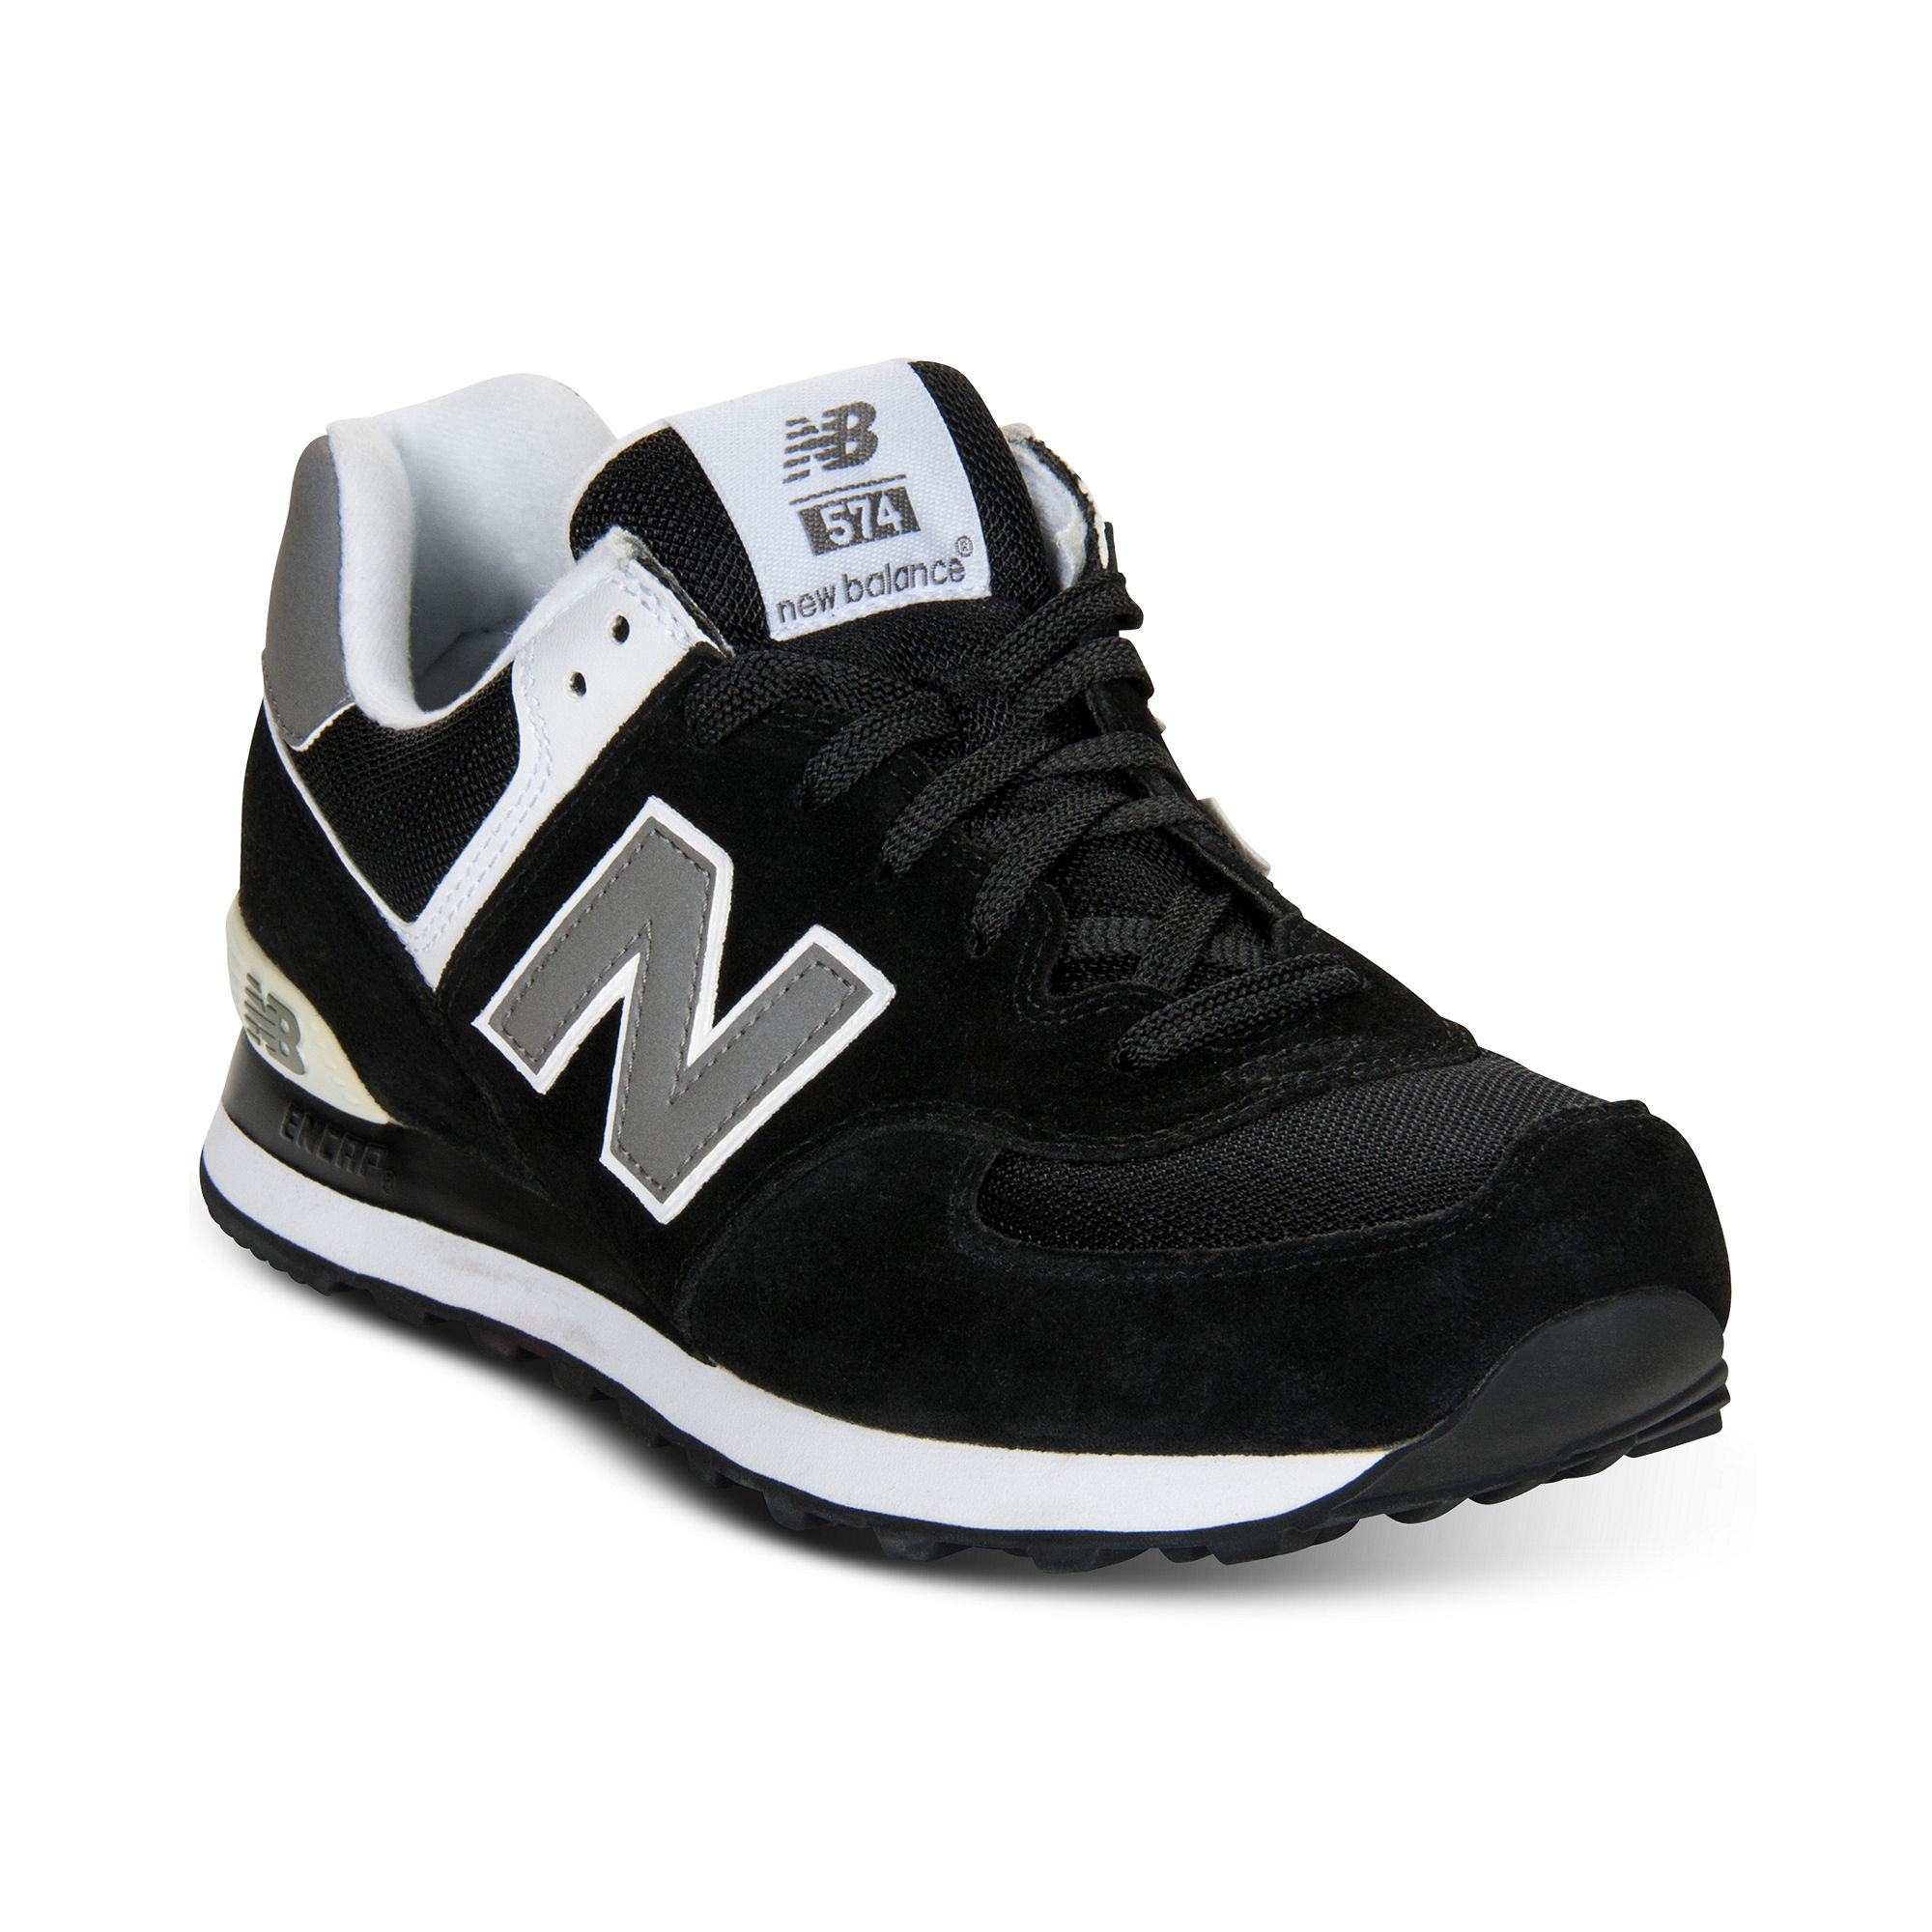 new balance 574 suede sneakers from finish line in black. Black Bedroom Furniture Sets. Home Design Ideas